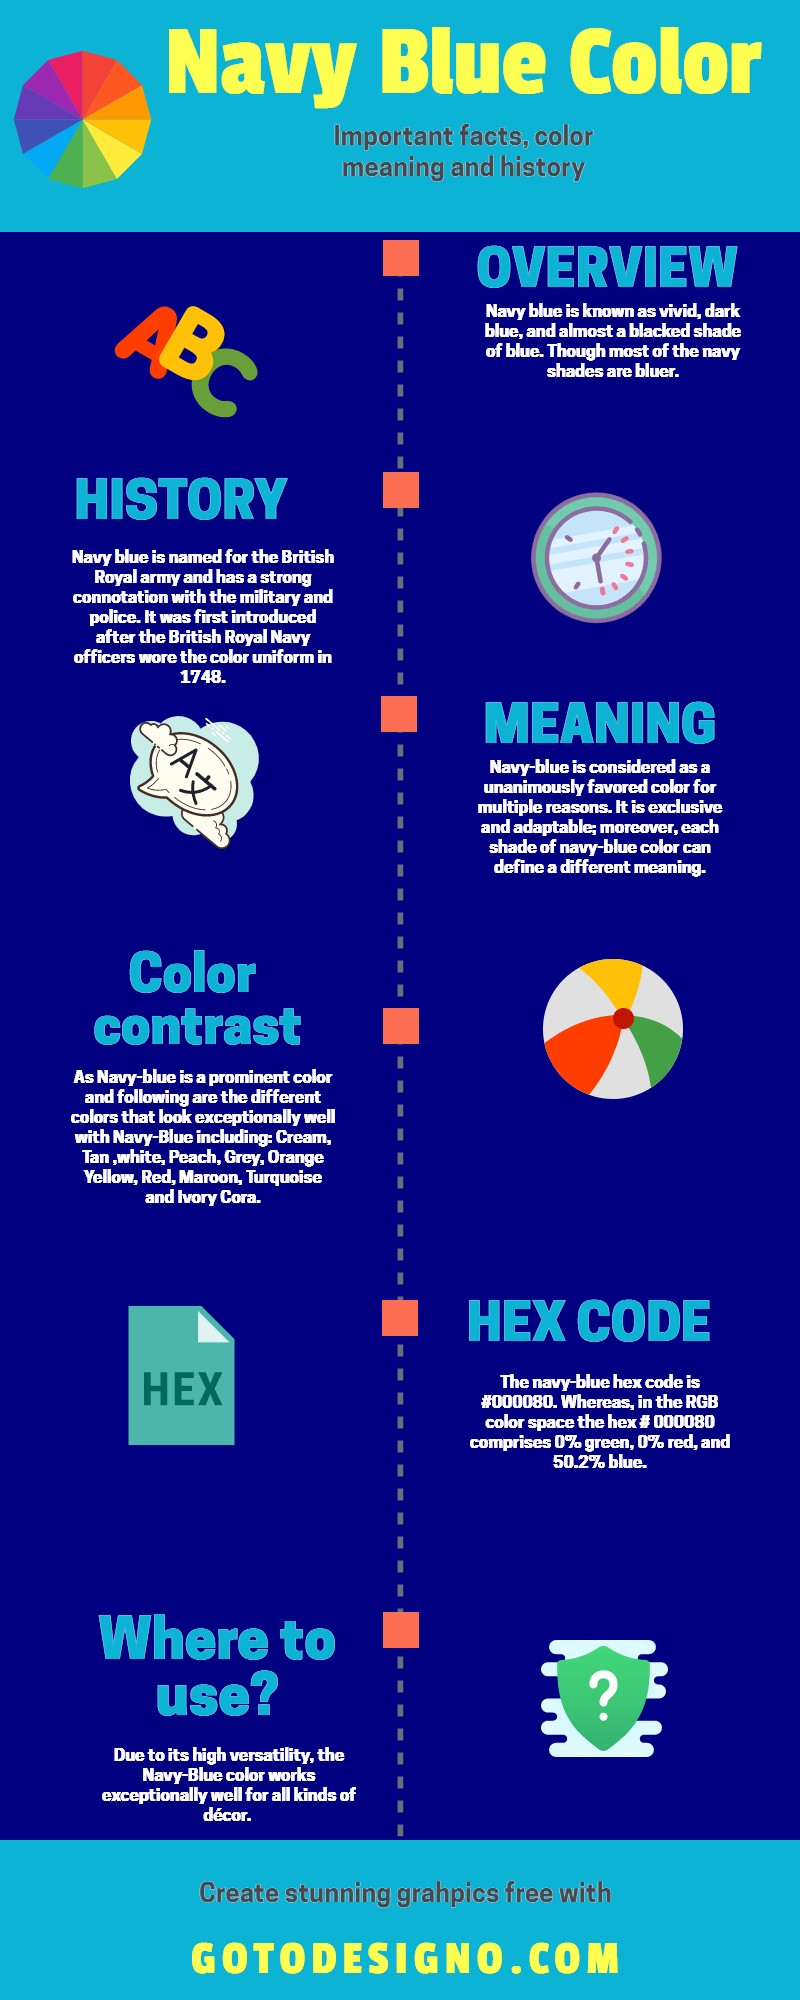 Navy Blue Color Code >> Navy Blue Meaning Hex Code And Contrasts Complete Guide